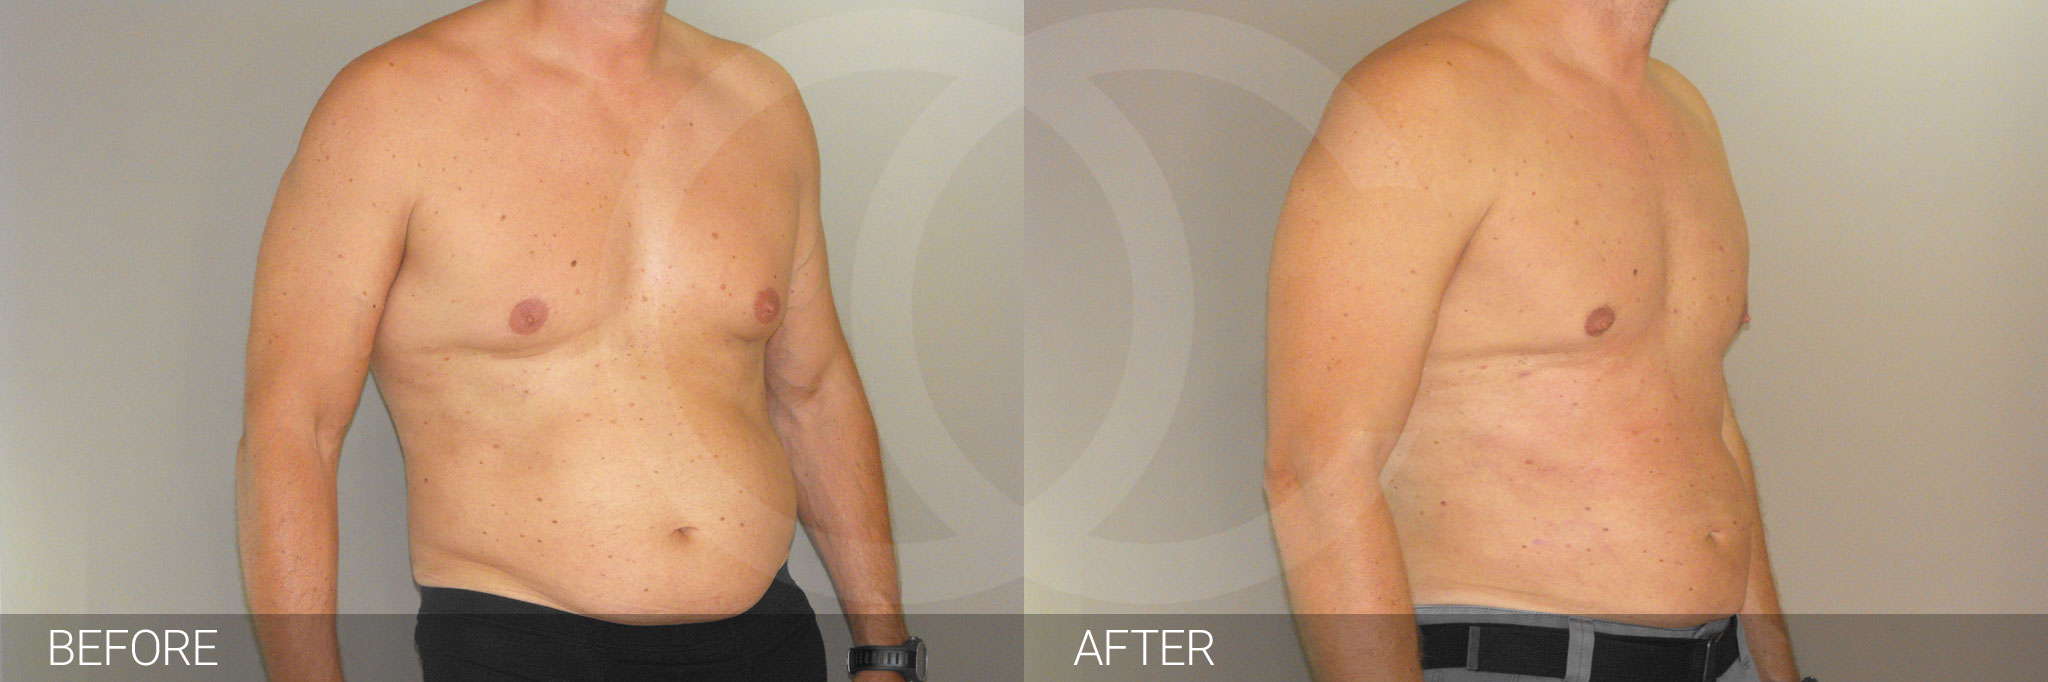 Gynecomastia MALE CHEST CONTOURING ante/post-op III